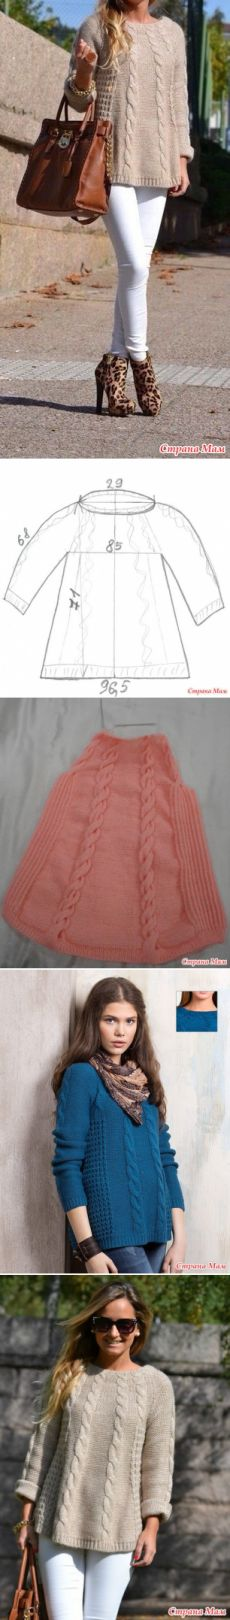 Online pullover angora. UPDATE 11/30/14 - knit together online - Country Mom